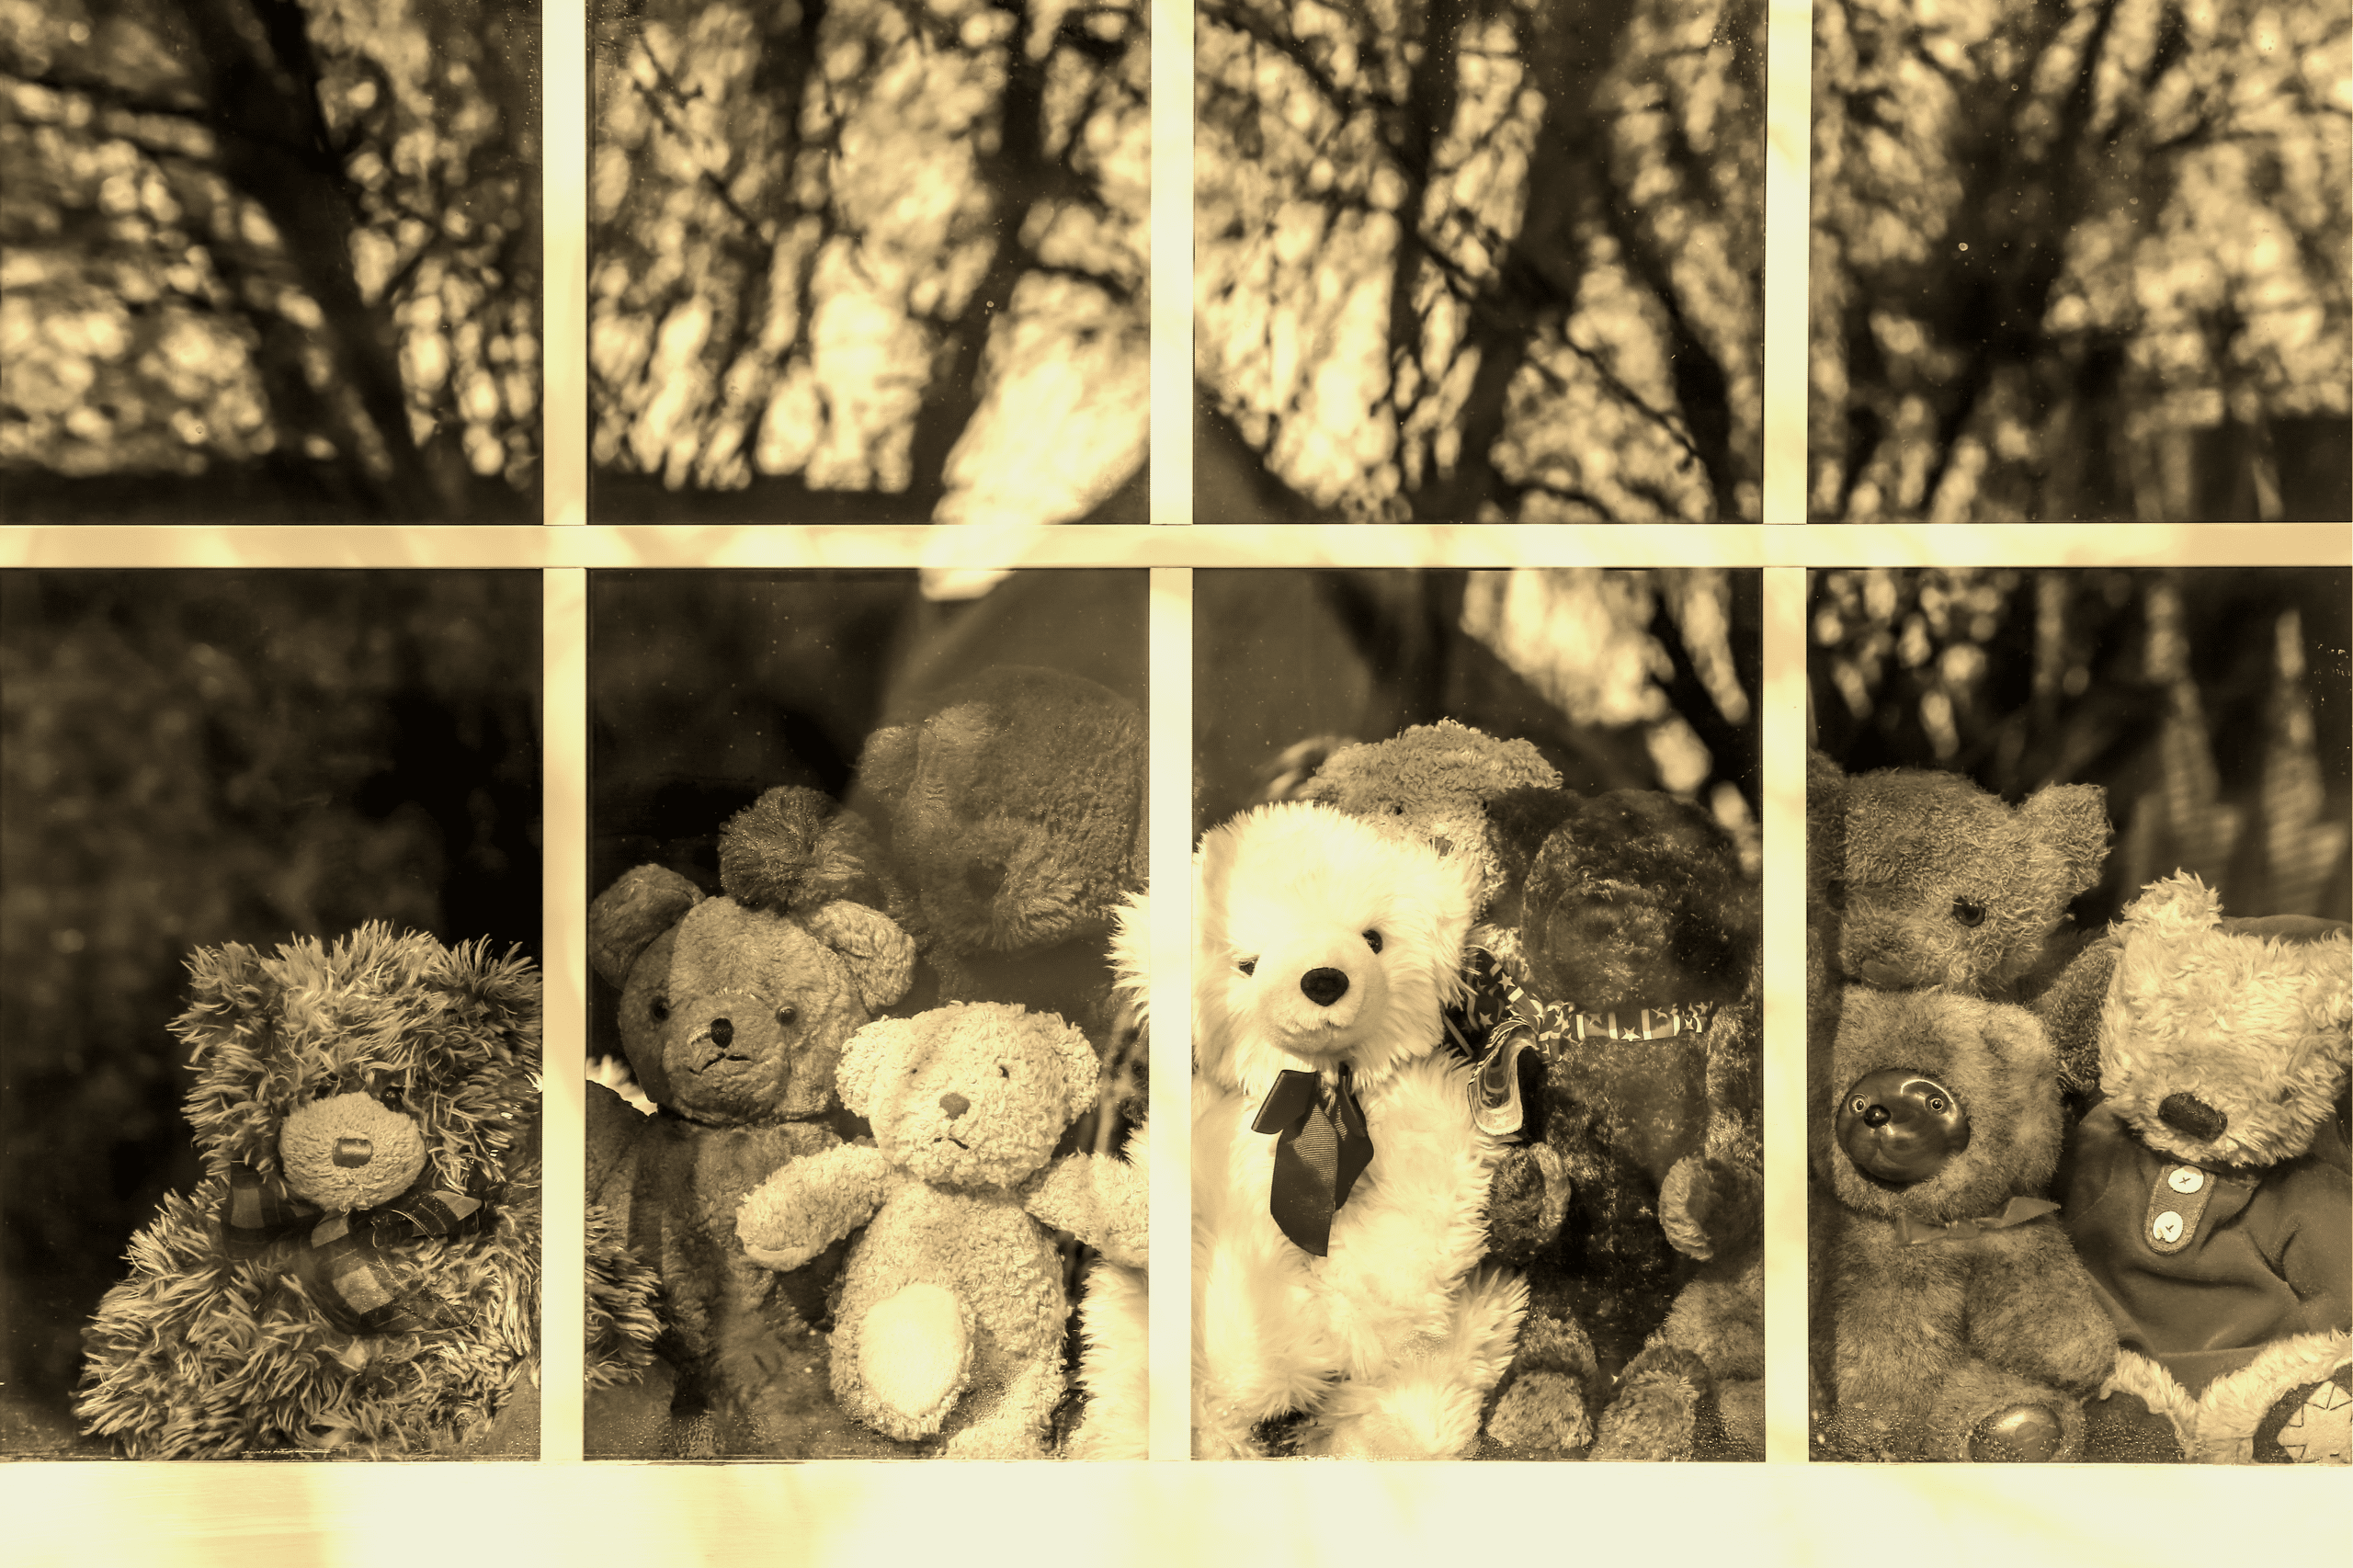 Group of teddy bears sitting in a window set up for mourning 215 indigenous children